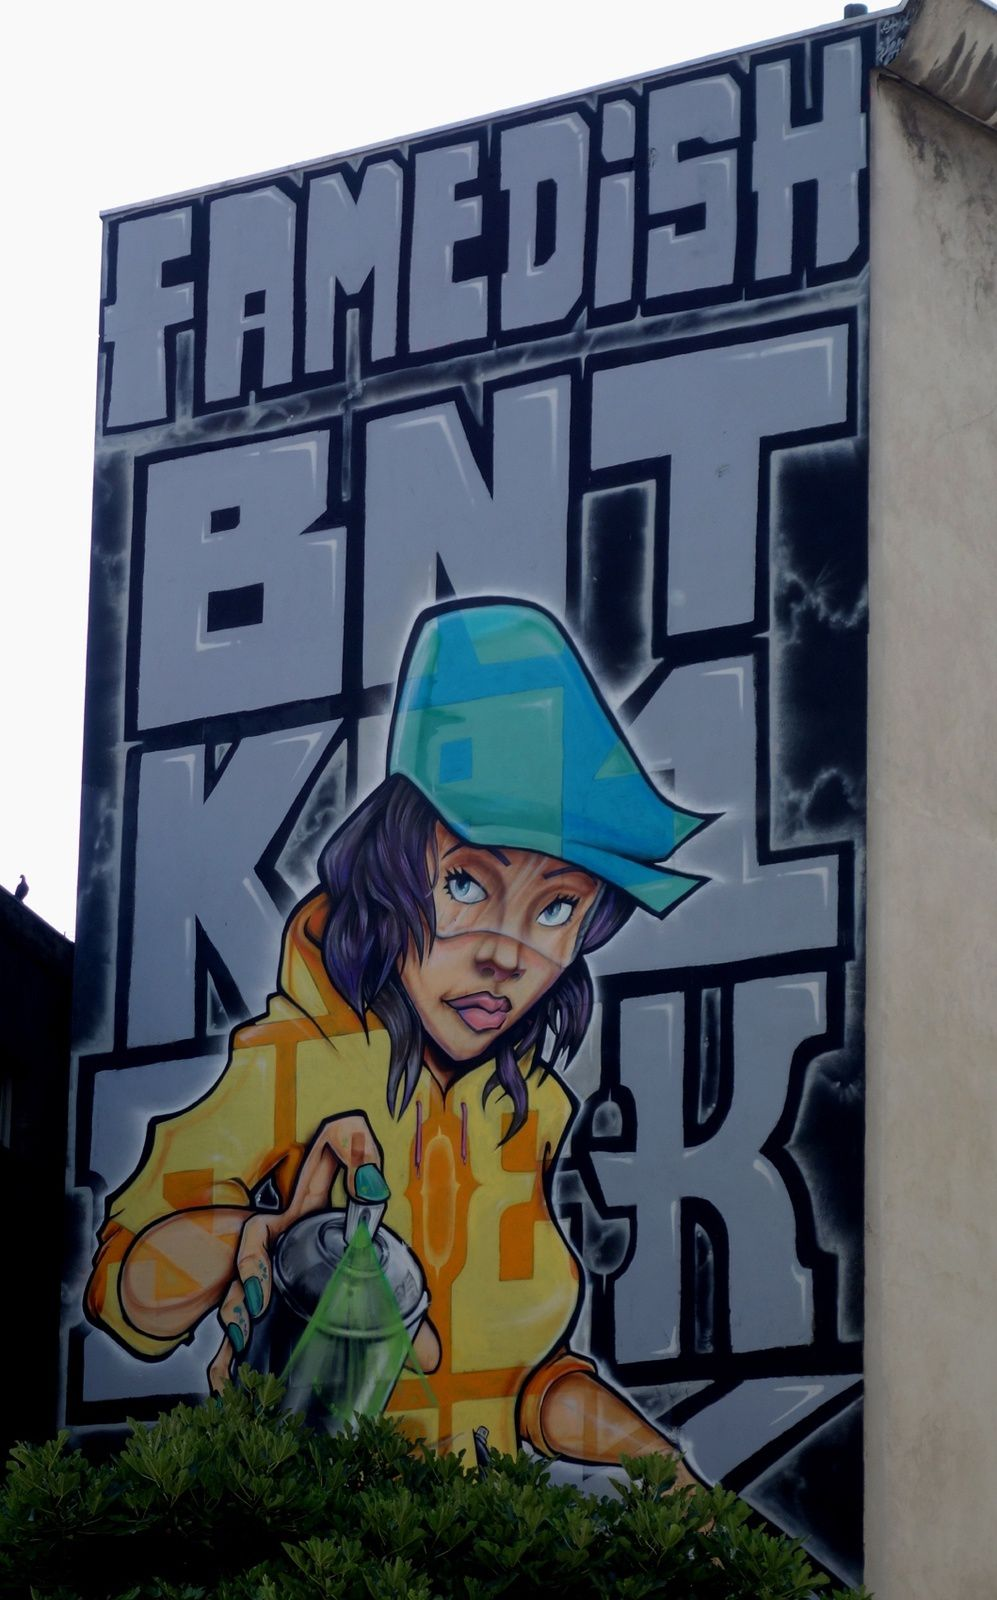 Street Art : Graffitis & Fresques Murales 38185 Grenoble